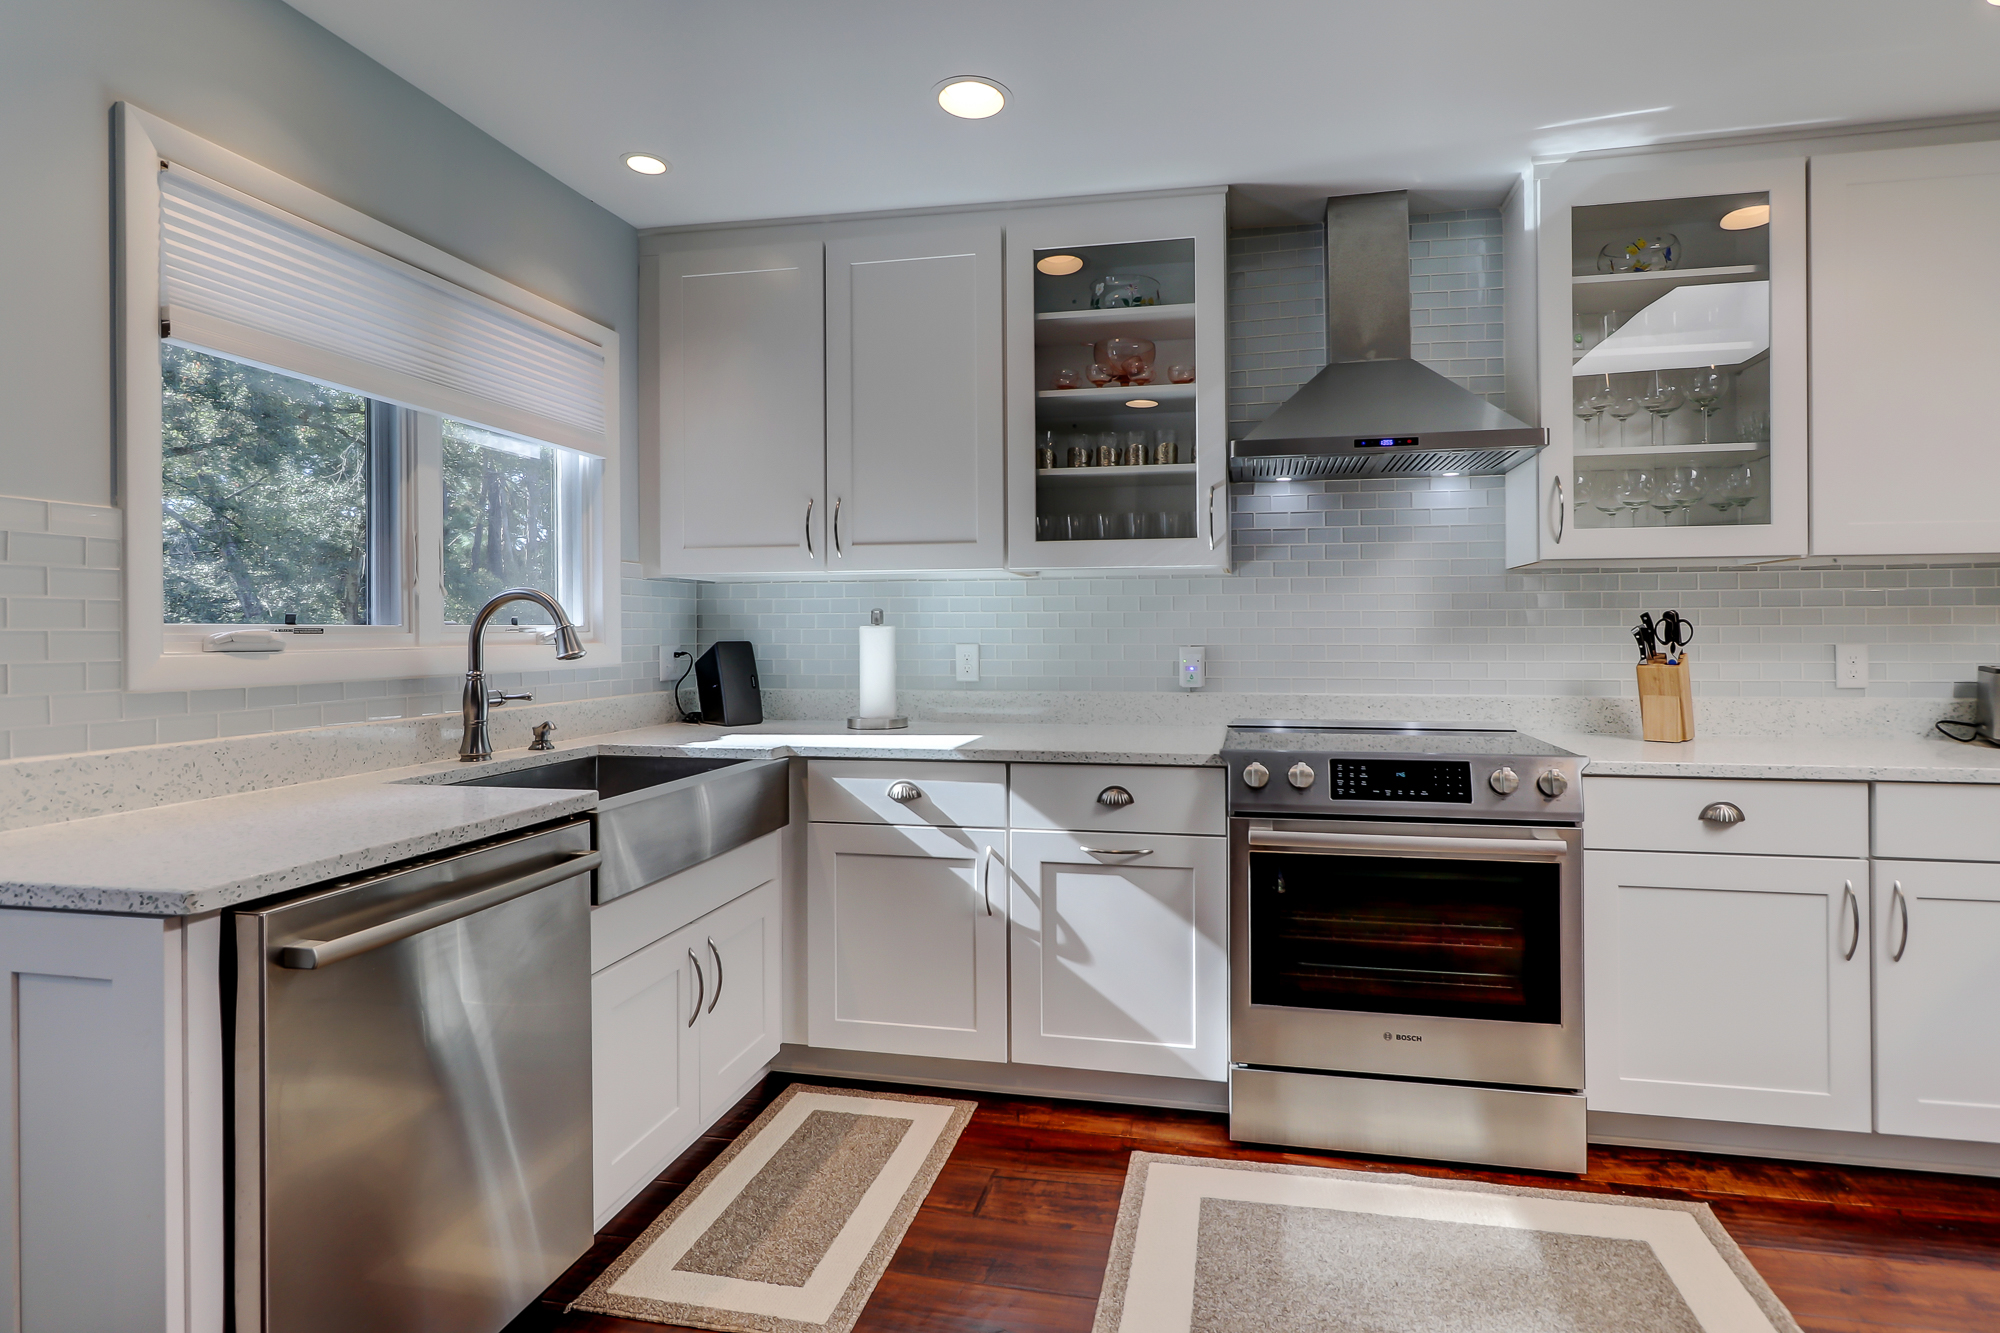 Custom Kitchen, Stainless Steel Appliances, Silestone Counters, wood floors and plenty of natural light. 8 Bradley Beach Road MLS 388240